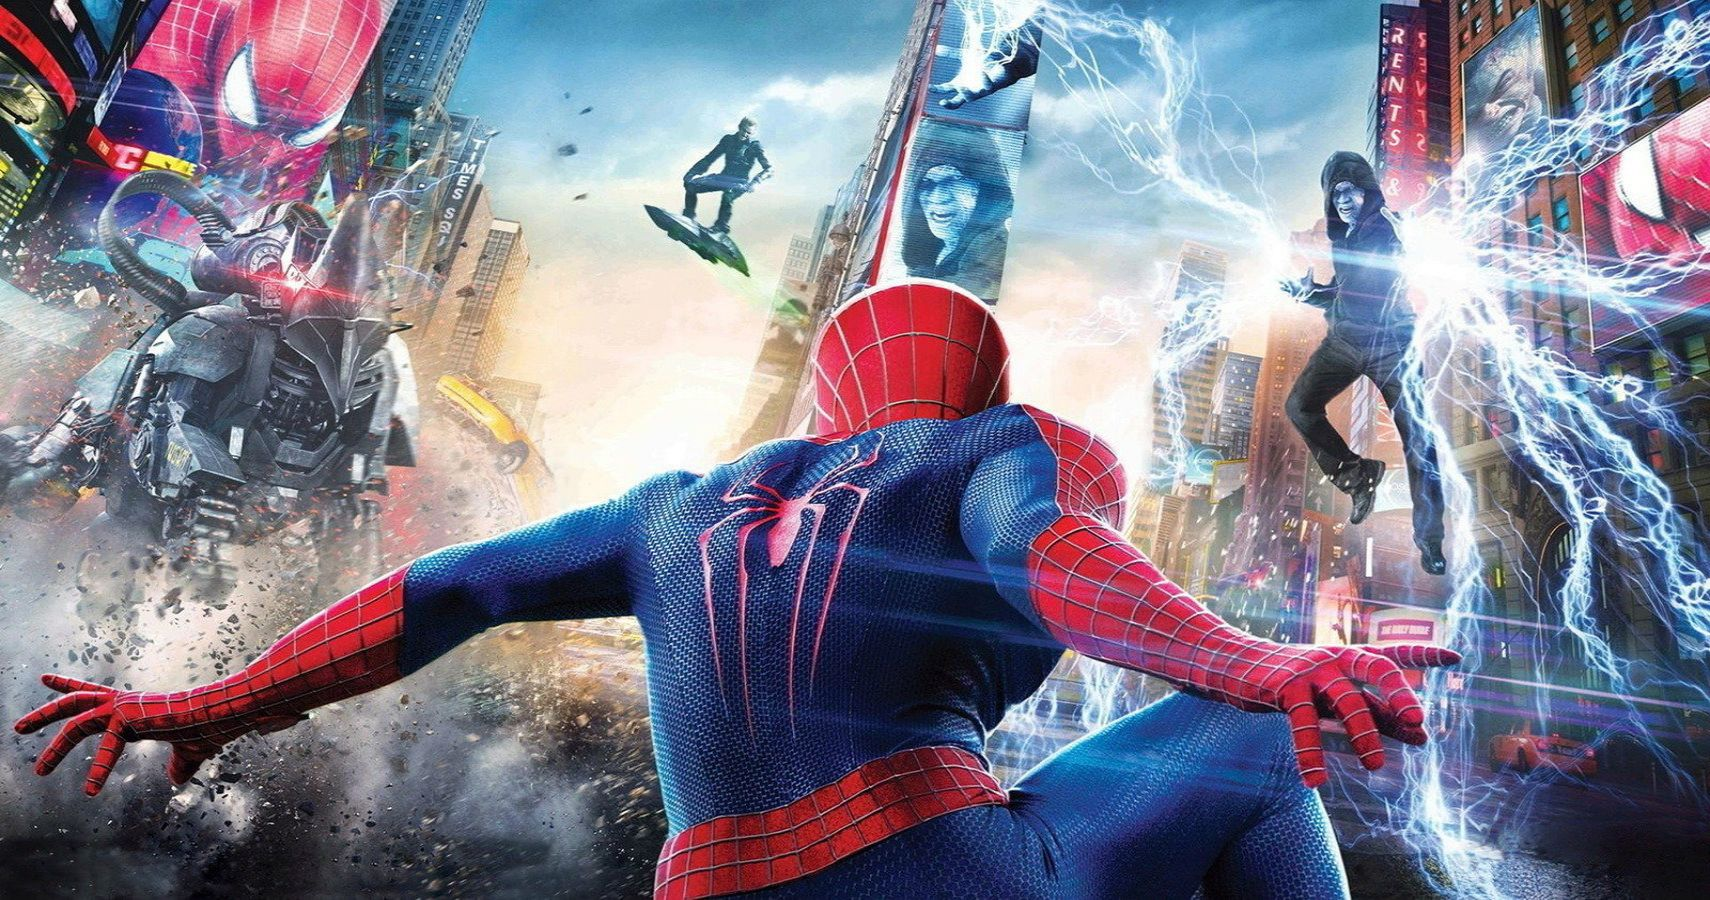 Amazing Spider-Man 3: 4 Rumored Things We Would've Loved (& 4 We're Glad Aren't Happening)